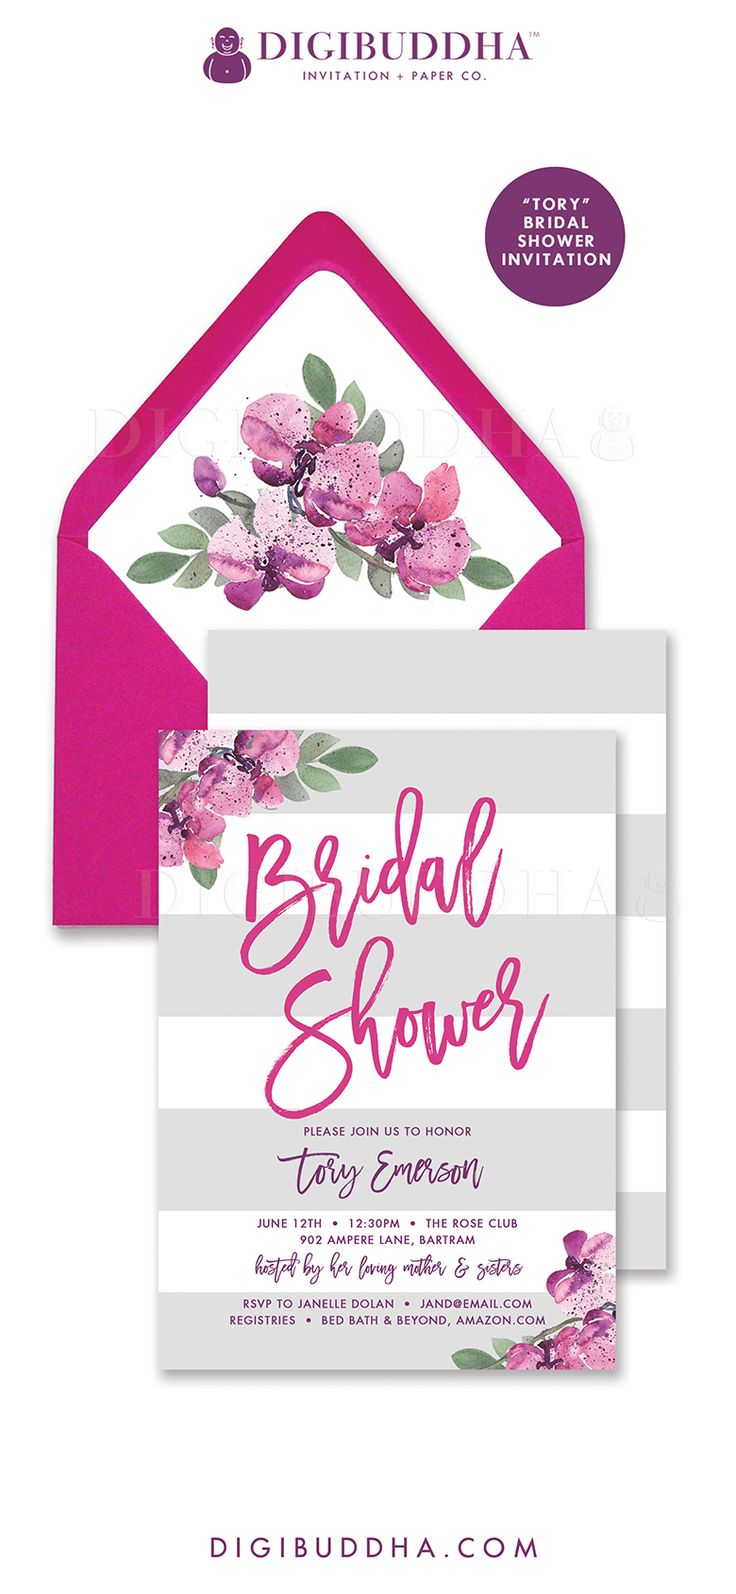 free e cards bridal shower invitations%0A Bridal Shower Invitation    Tory   style with beautiful romantic pink and  purple watercolor florals